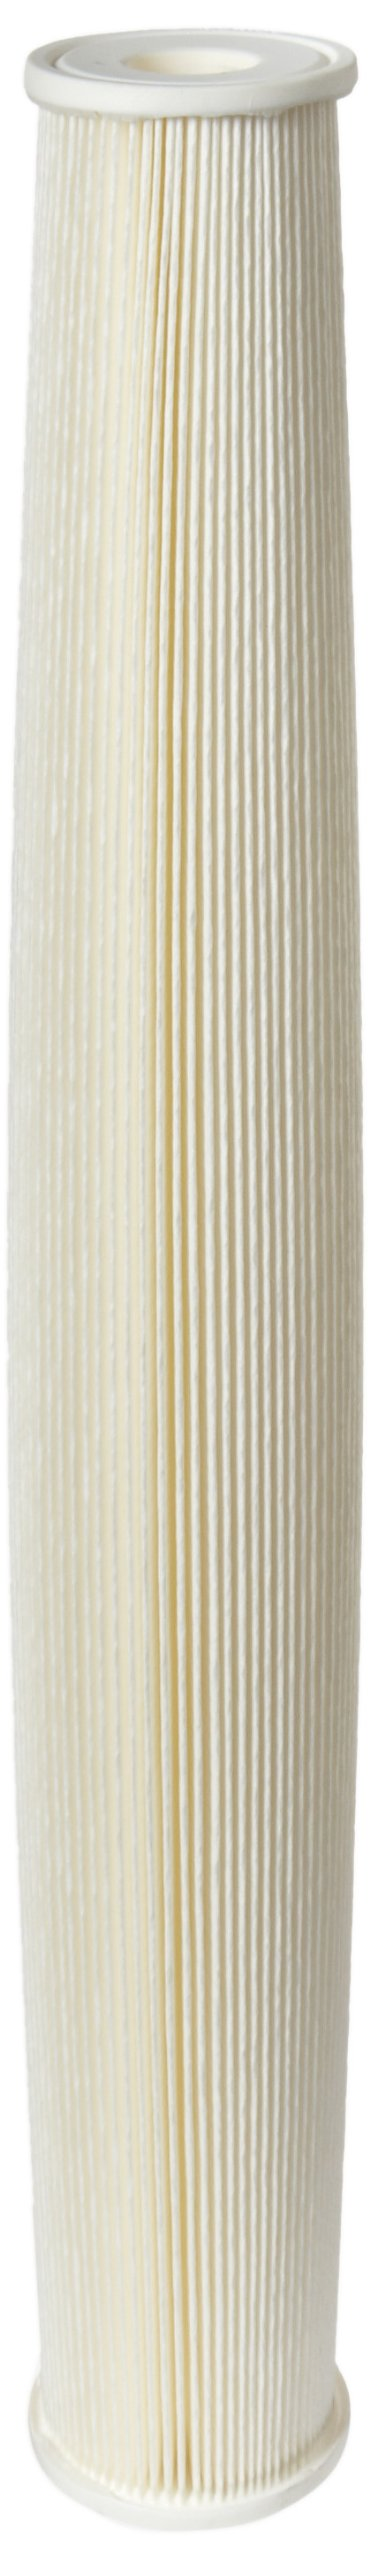 Pentek ECP5-20 Pleated Cellulose Polyester Filter Cartridge, 20'' x 2-5/8'', 5 Microns